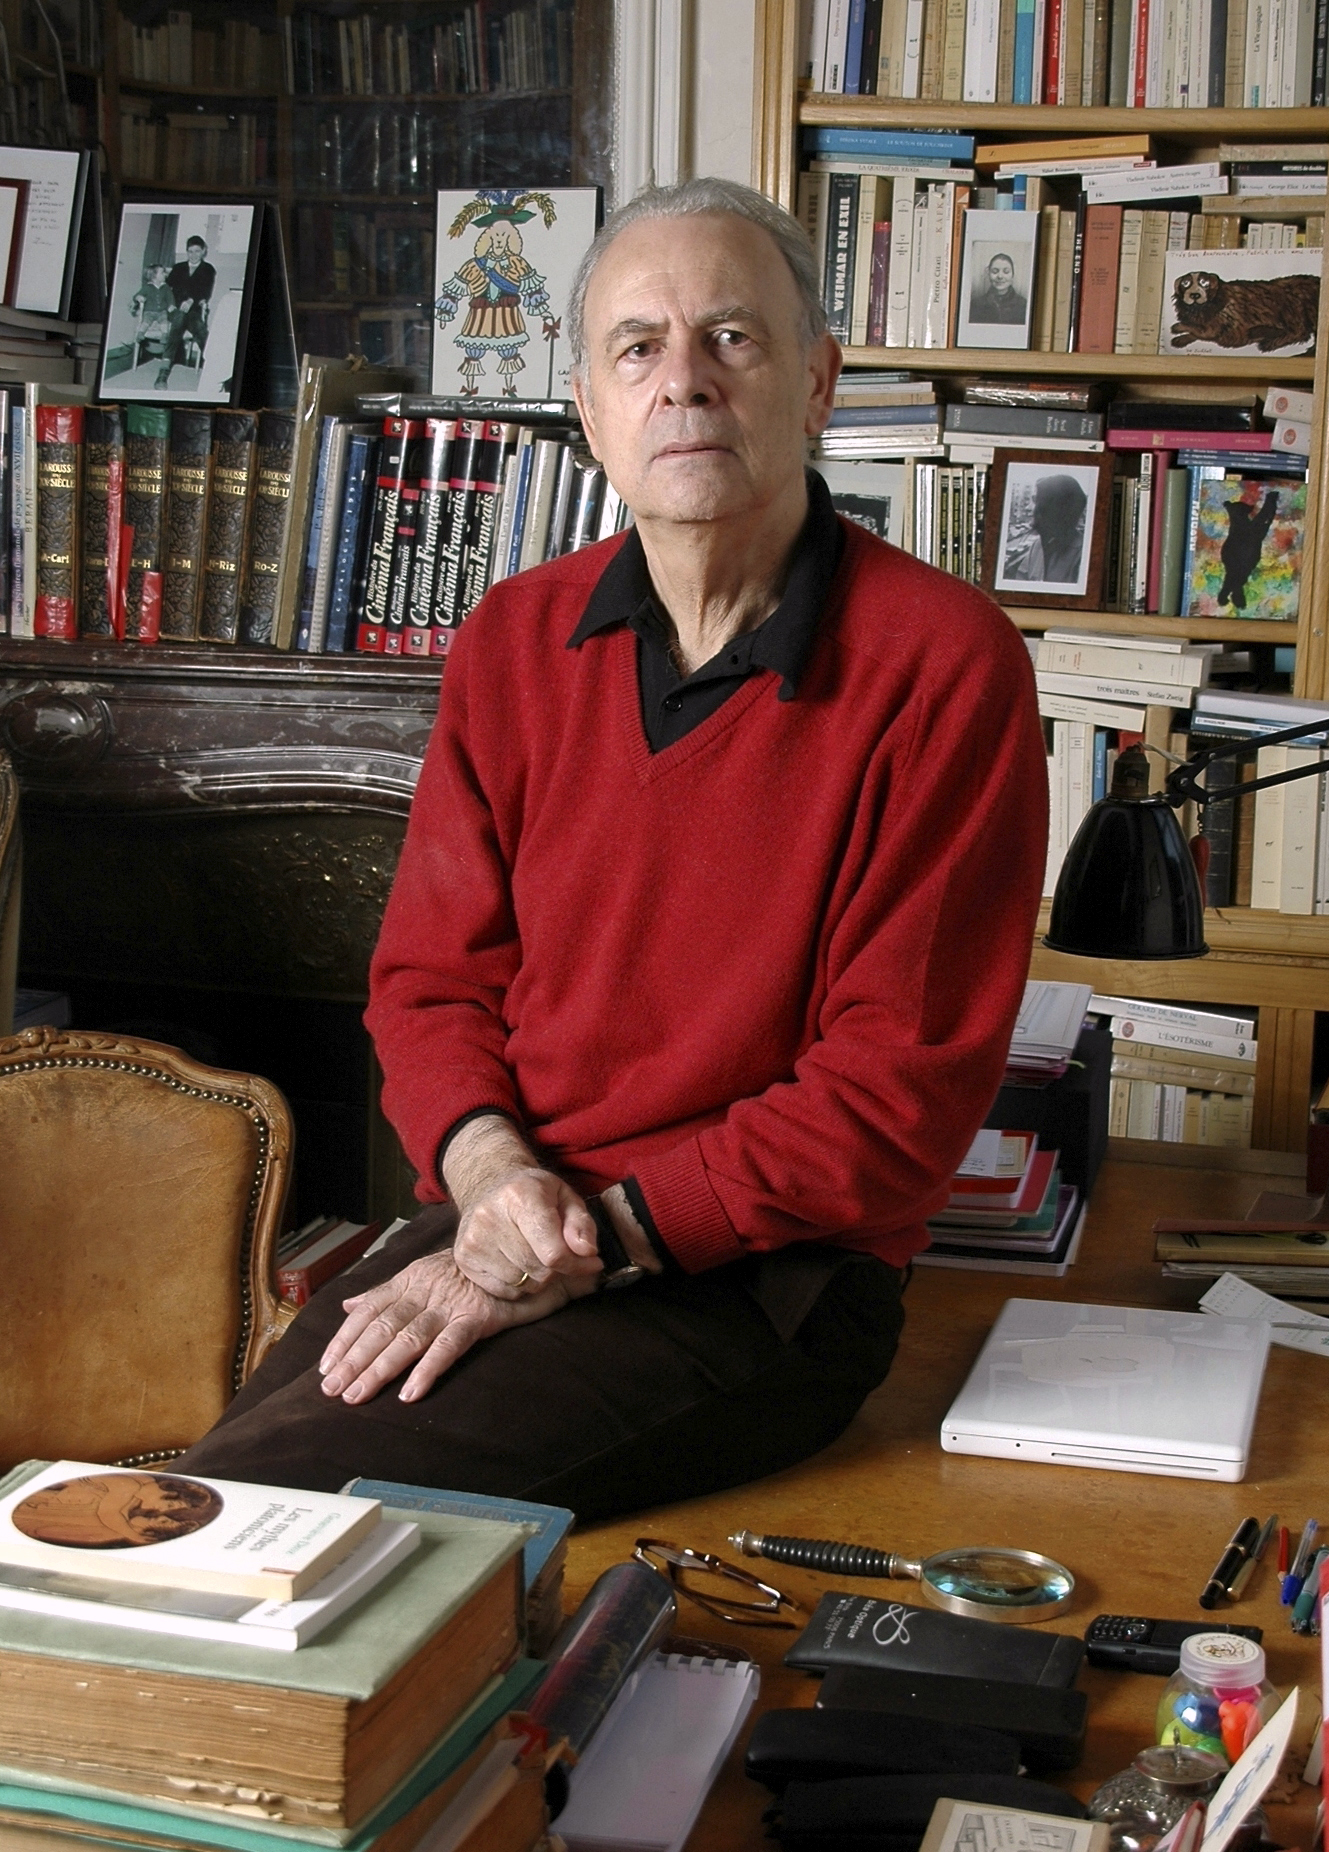 French novelist Patrick Modiano poses for a photograph. Patrick Modiano of France has won the 2014 Nobel Prize for Literature.